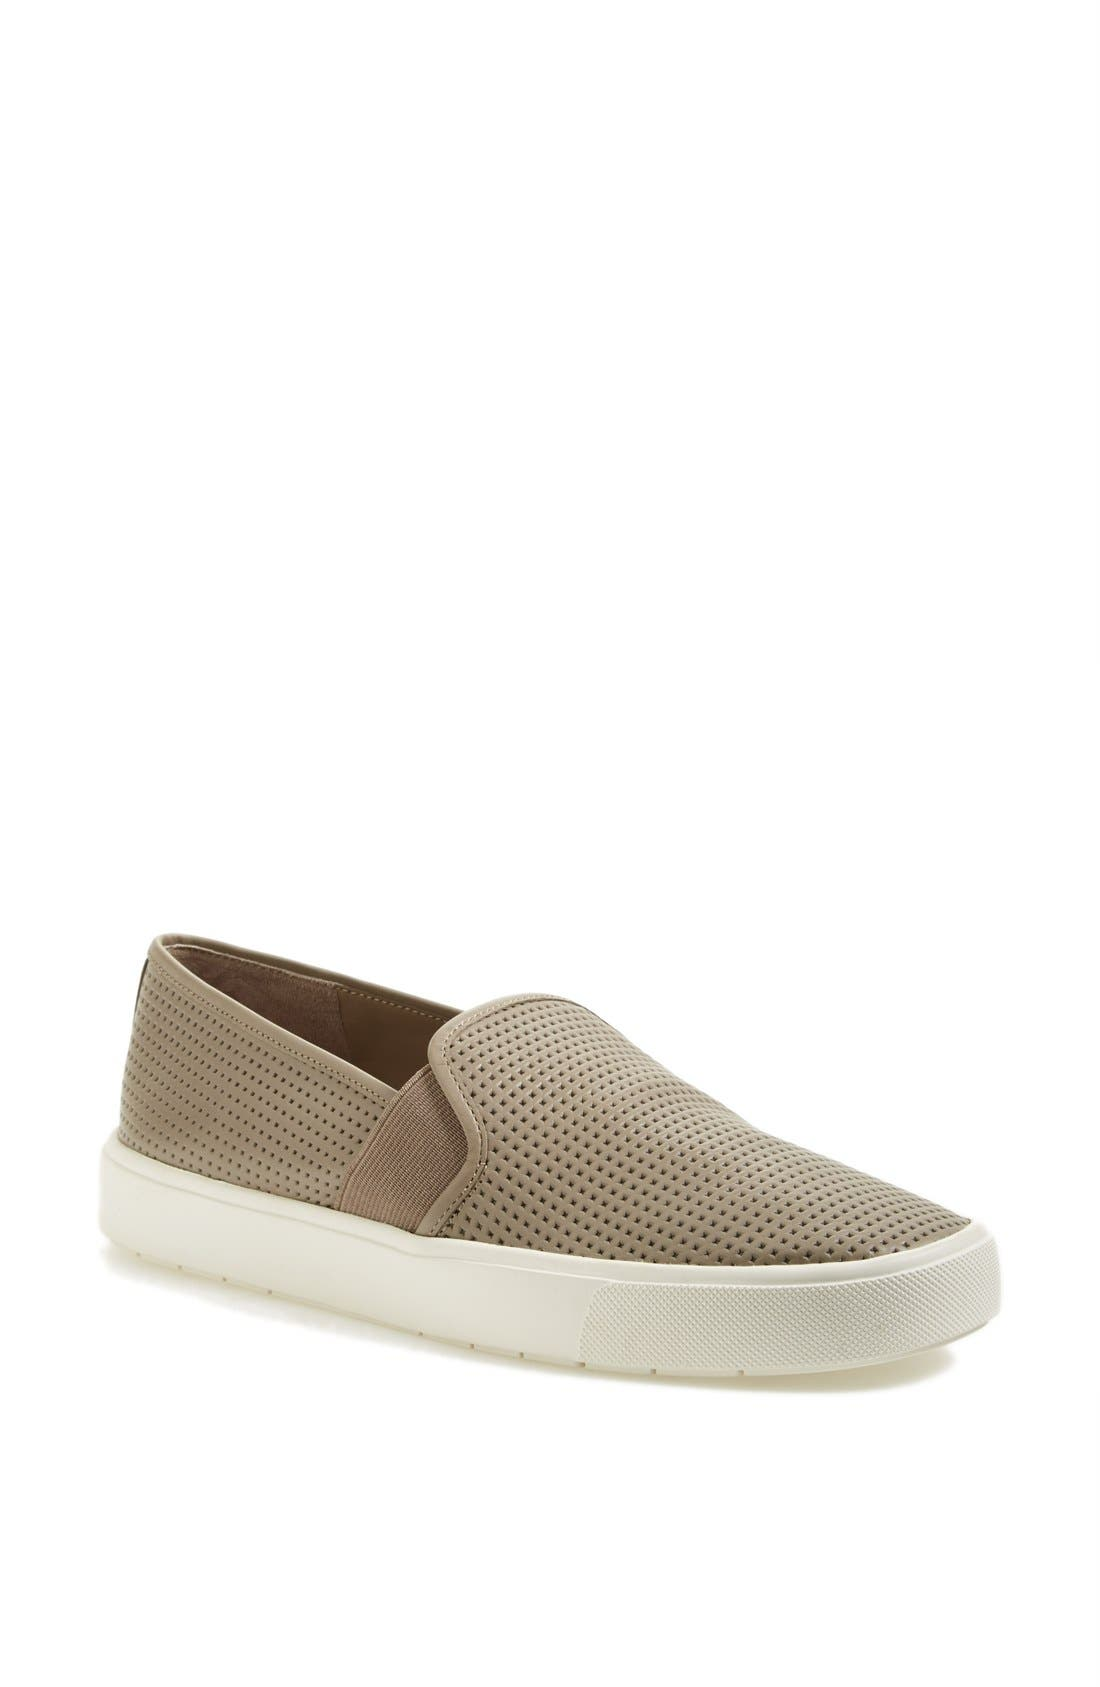 Blair 5 Slip-On Sneaker,                         Main,                         color, Woodsmoke